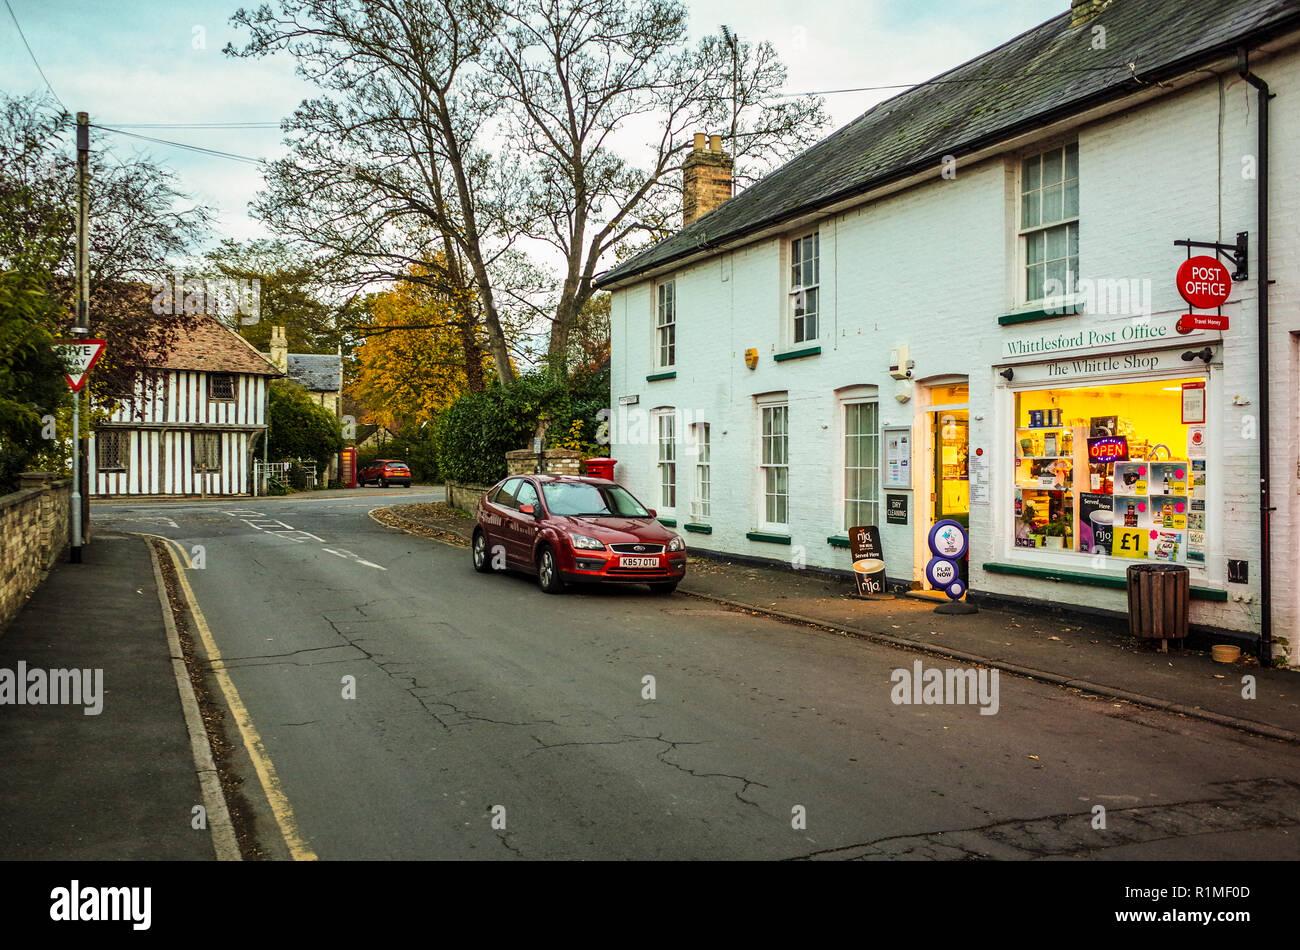 Whittlesford Cambridgeshire - the centre of the Cambs village of Whittlesford nr Cambridge. Shop & Post Office, C16th Guildhall in the background. - Stock Image